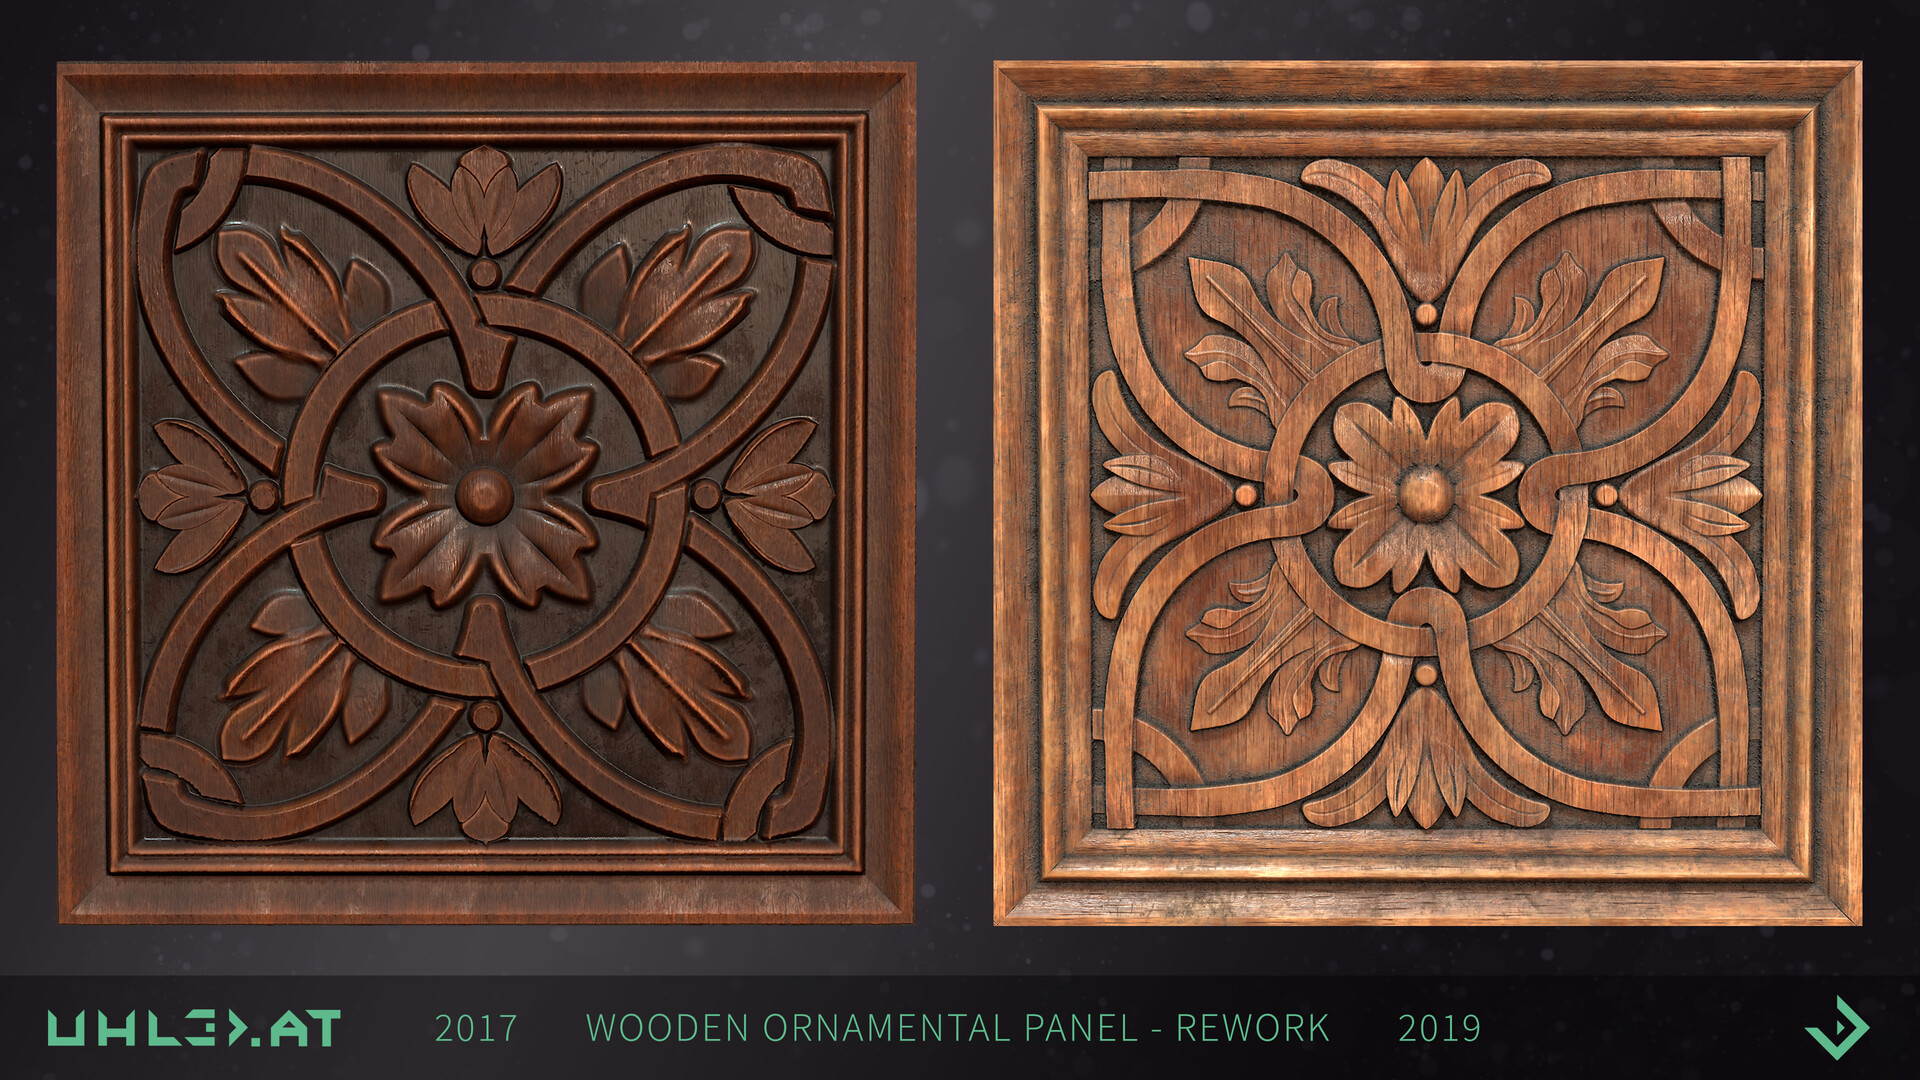 Dominik uhl wood panel ornament rework 09